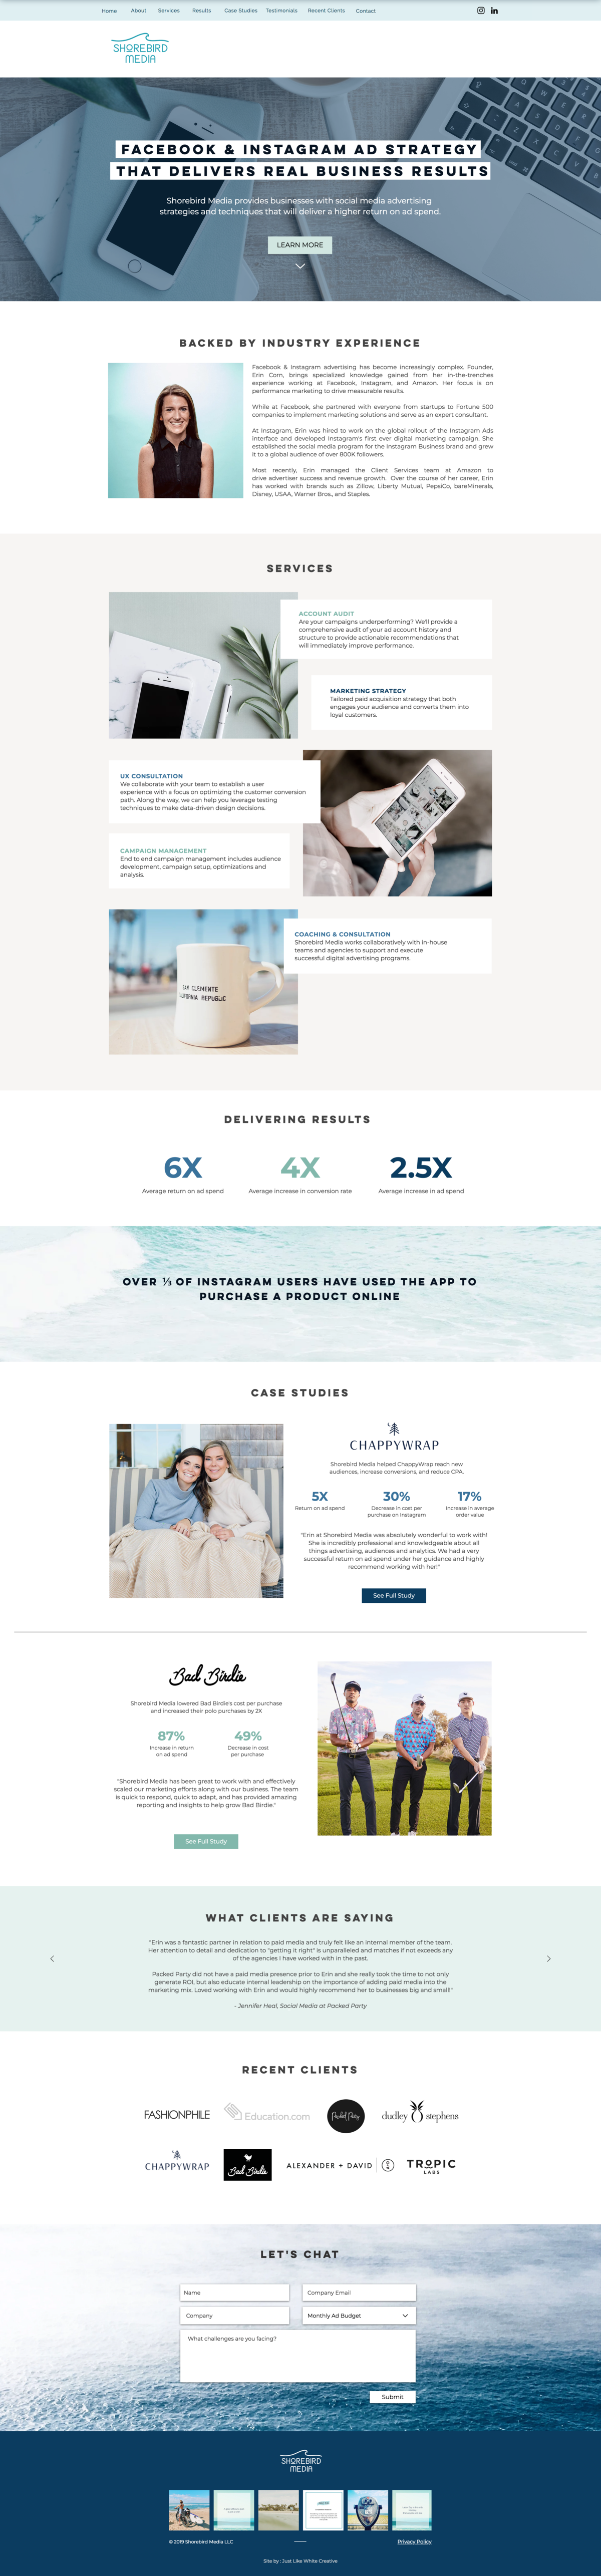 Ocean inspired website design